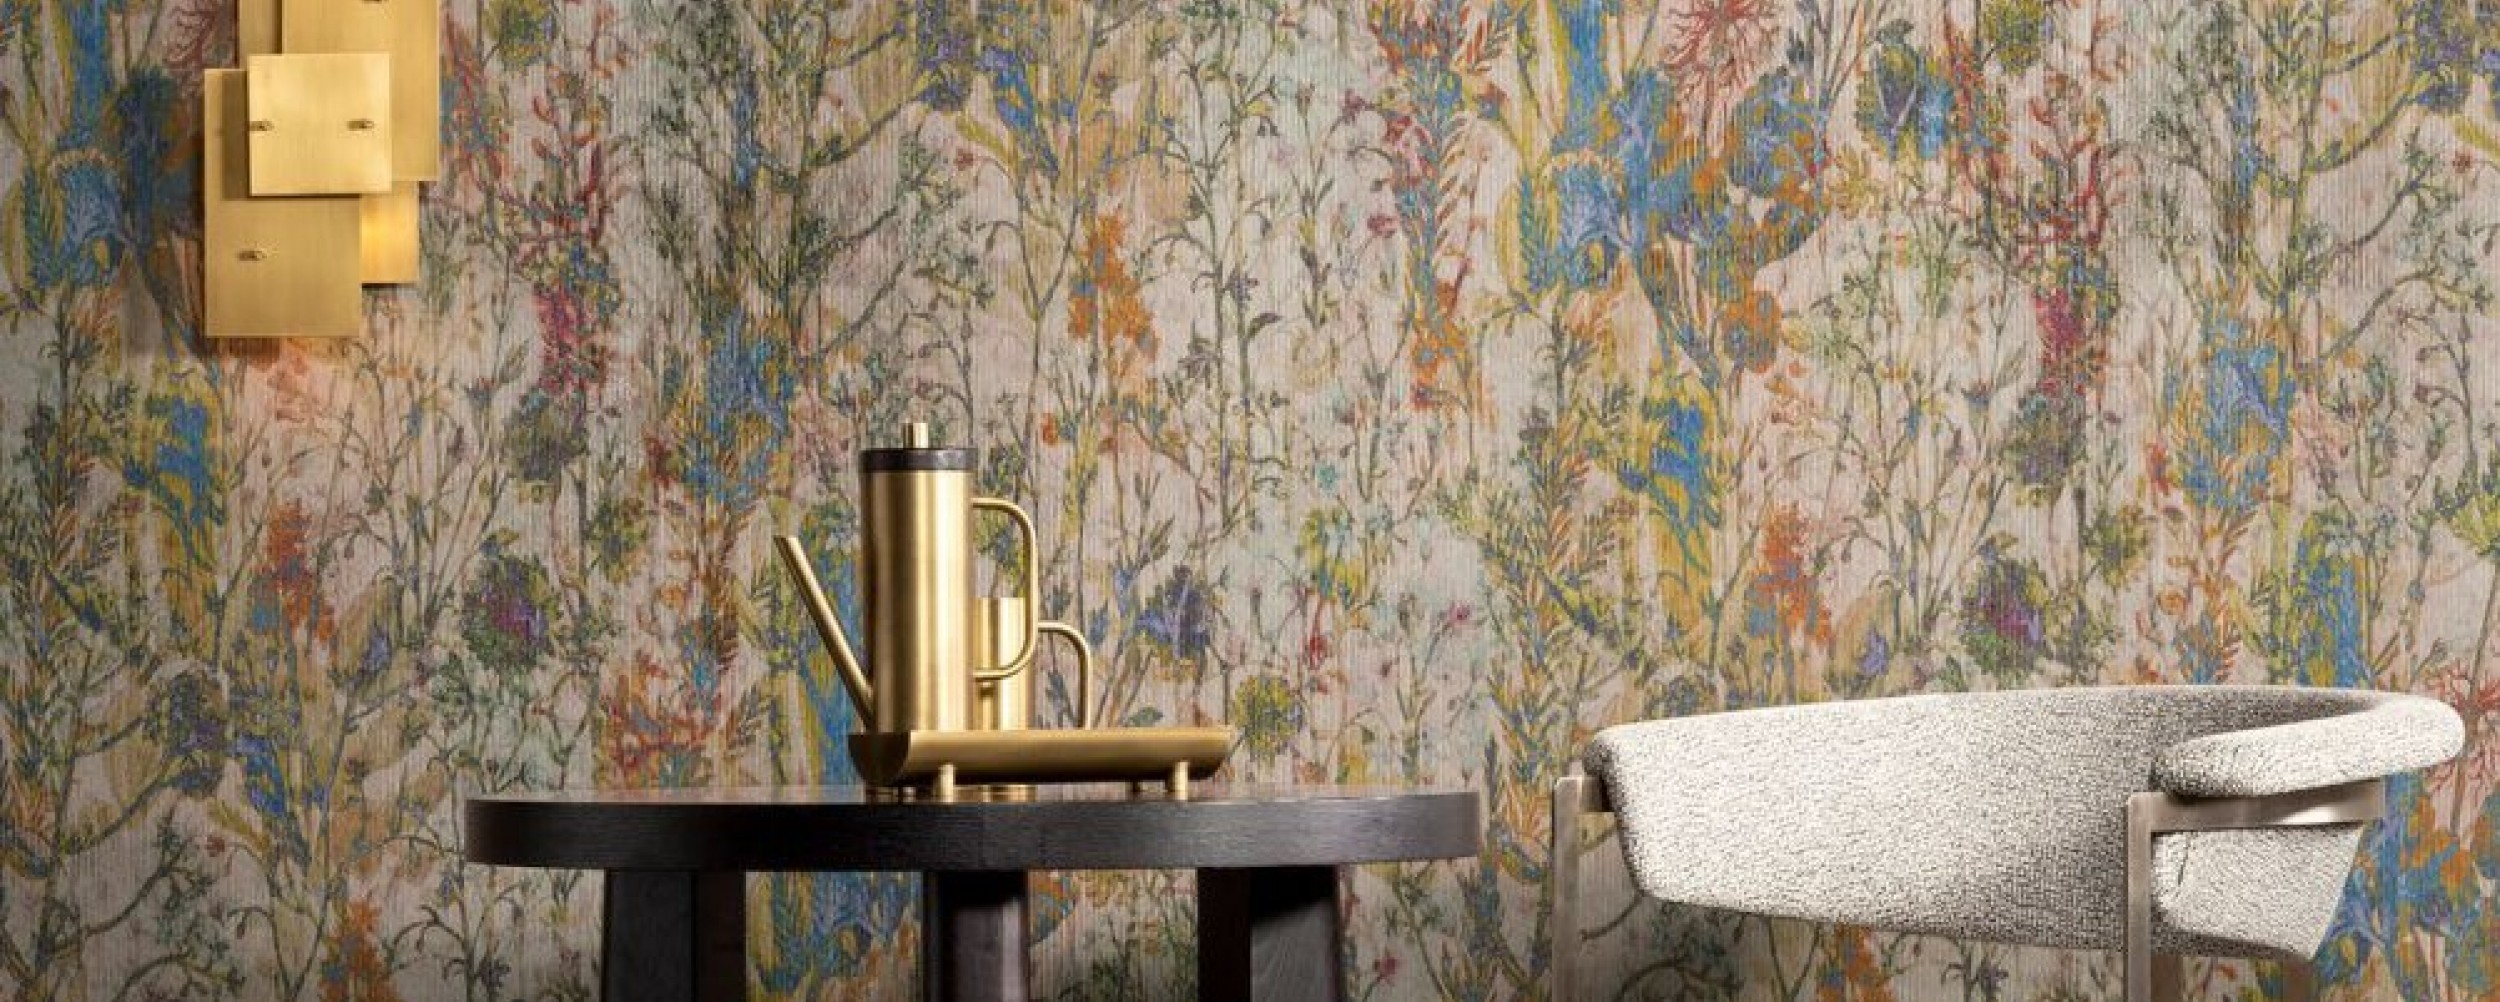 Luxury4walls Home Page Slideshow 5